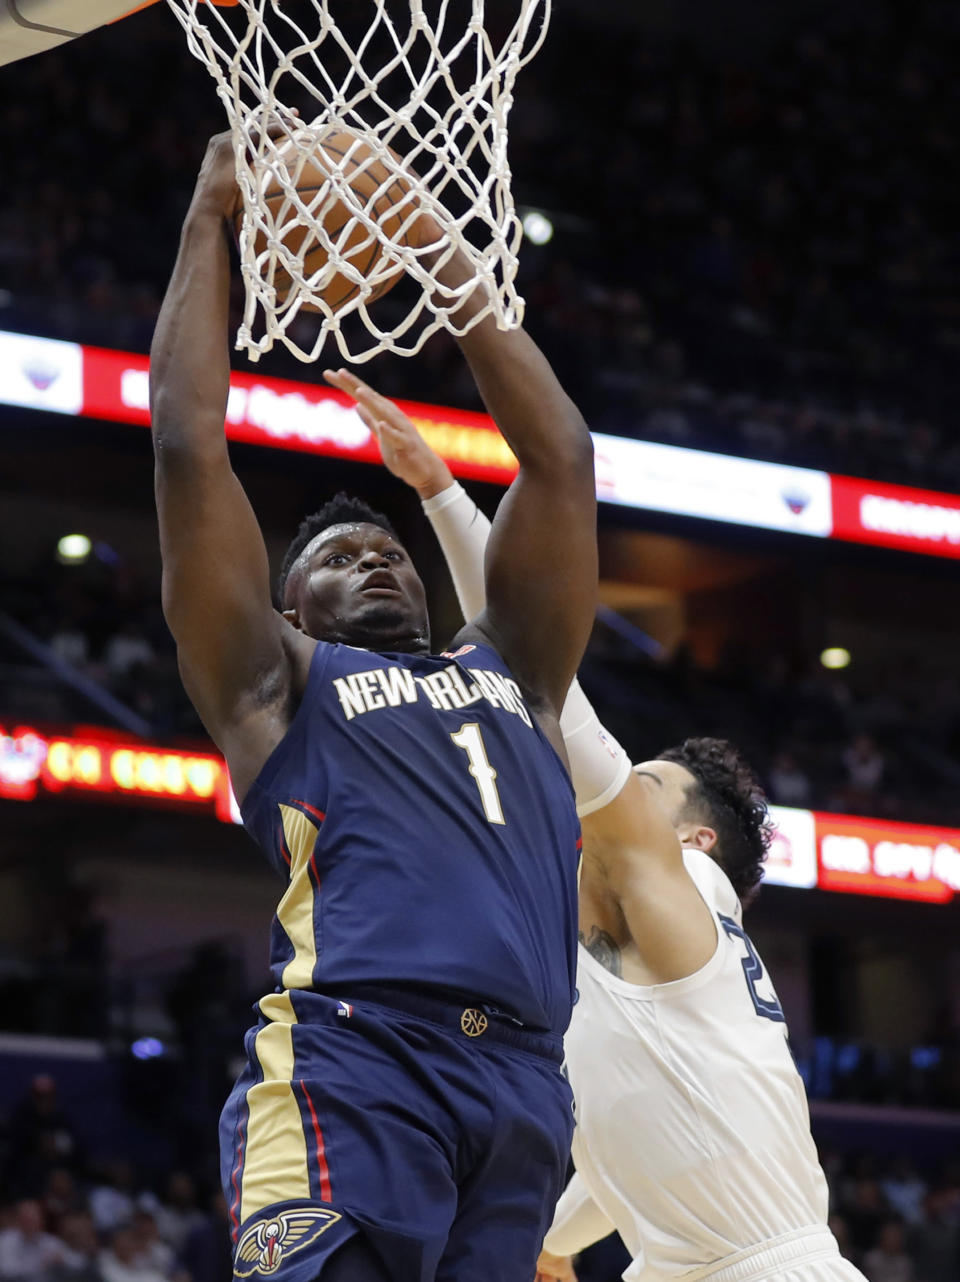 New Orleans Pelicans forward Zion Williamson (1) goes to the basket next to Memphis Grizzlies guard Dillon Brooks during the first half of an NBA basketball game in New Orleans, Friday, Jan. 31, 2020. (AP Photo/Gerald Herbert)